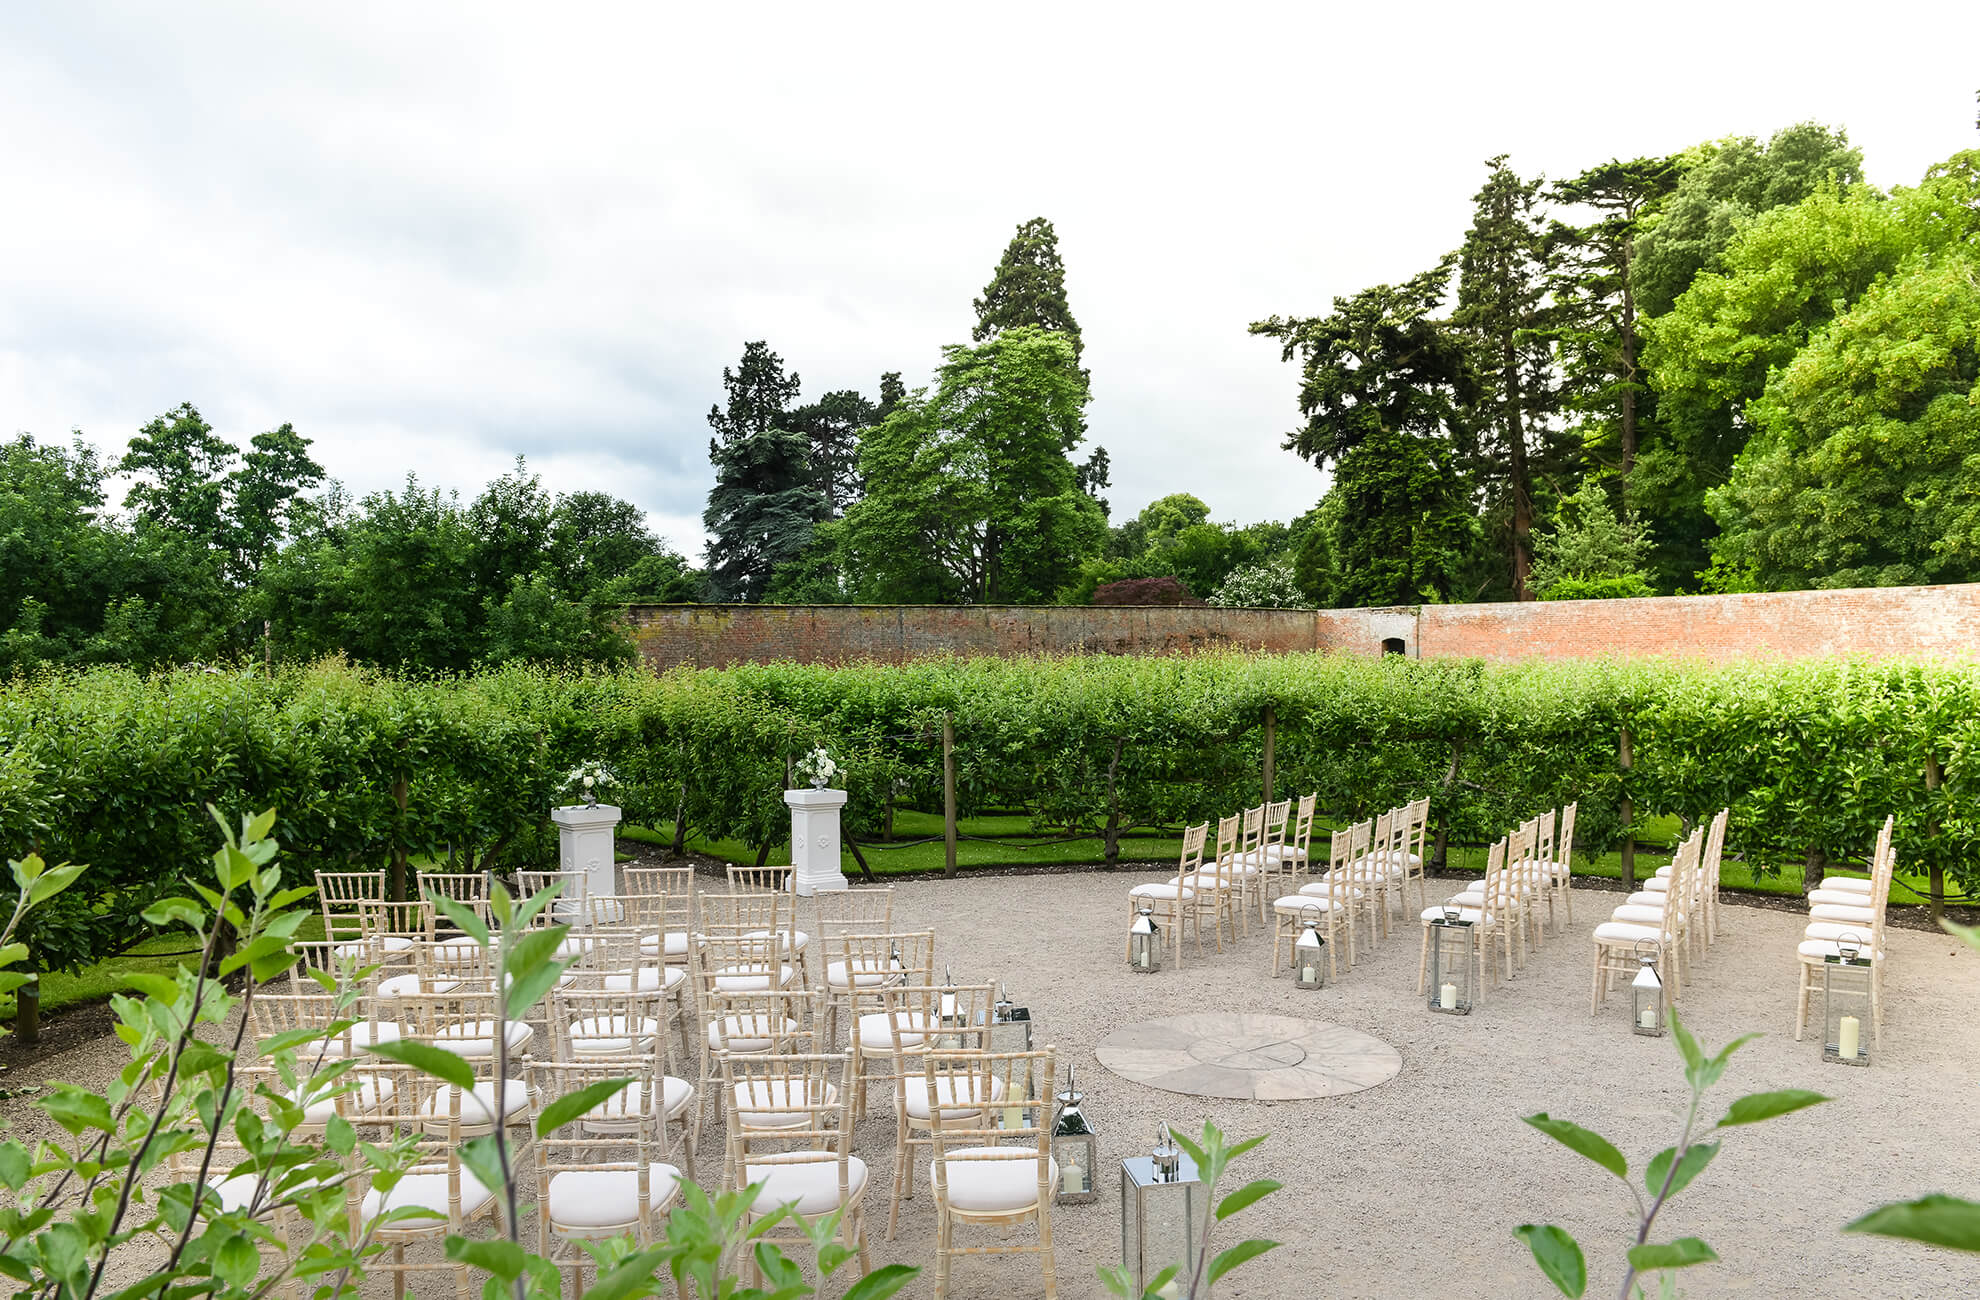 The middle of the Fruit Maze at Combermere Abbey is set up for a summer outdoor wedding ceremony